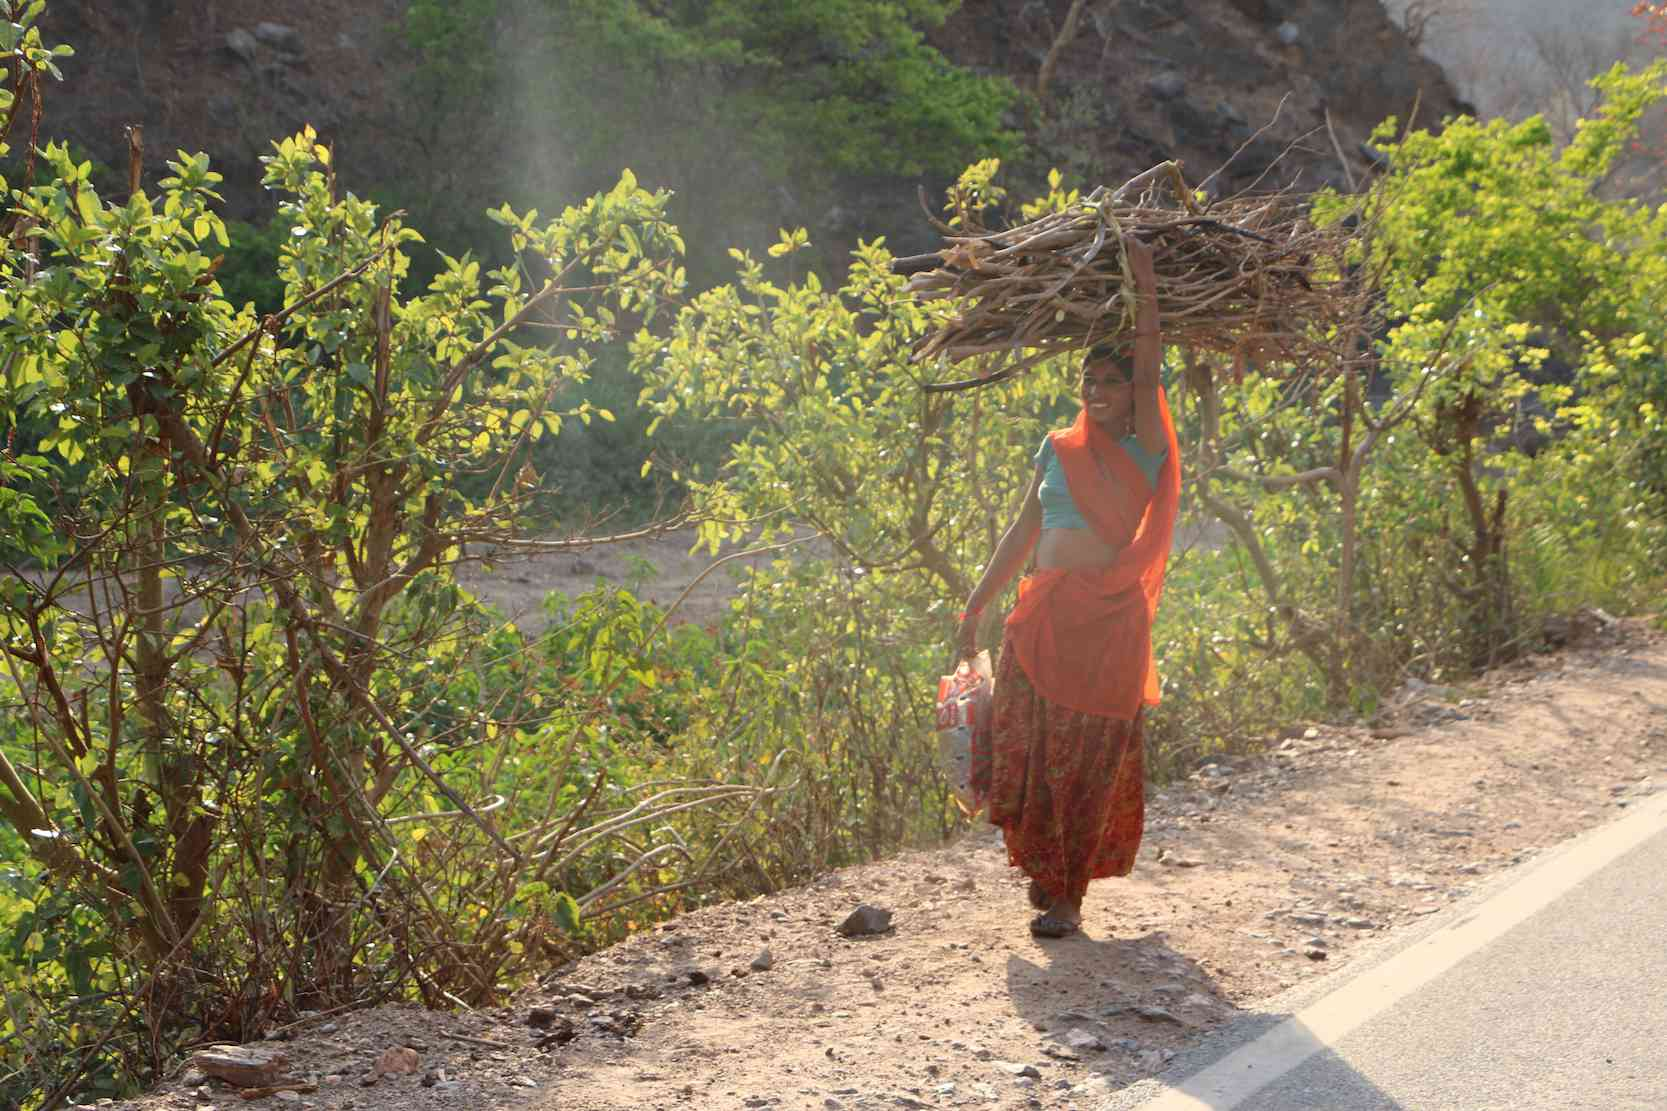 In many parts of Udaipur, Bhil Adivasis are still dependent on the forest for their basic needs.